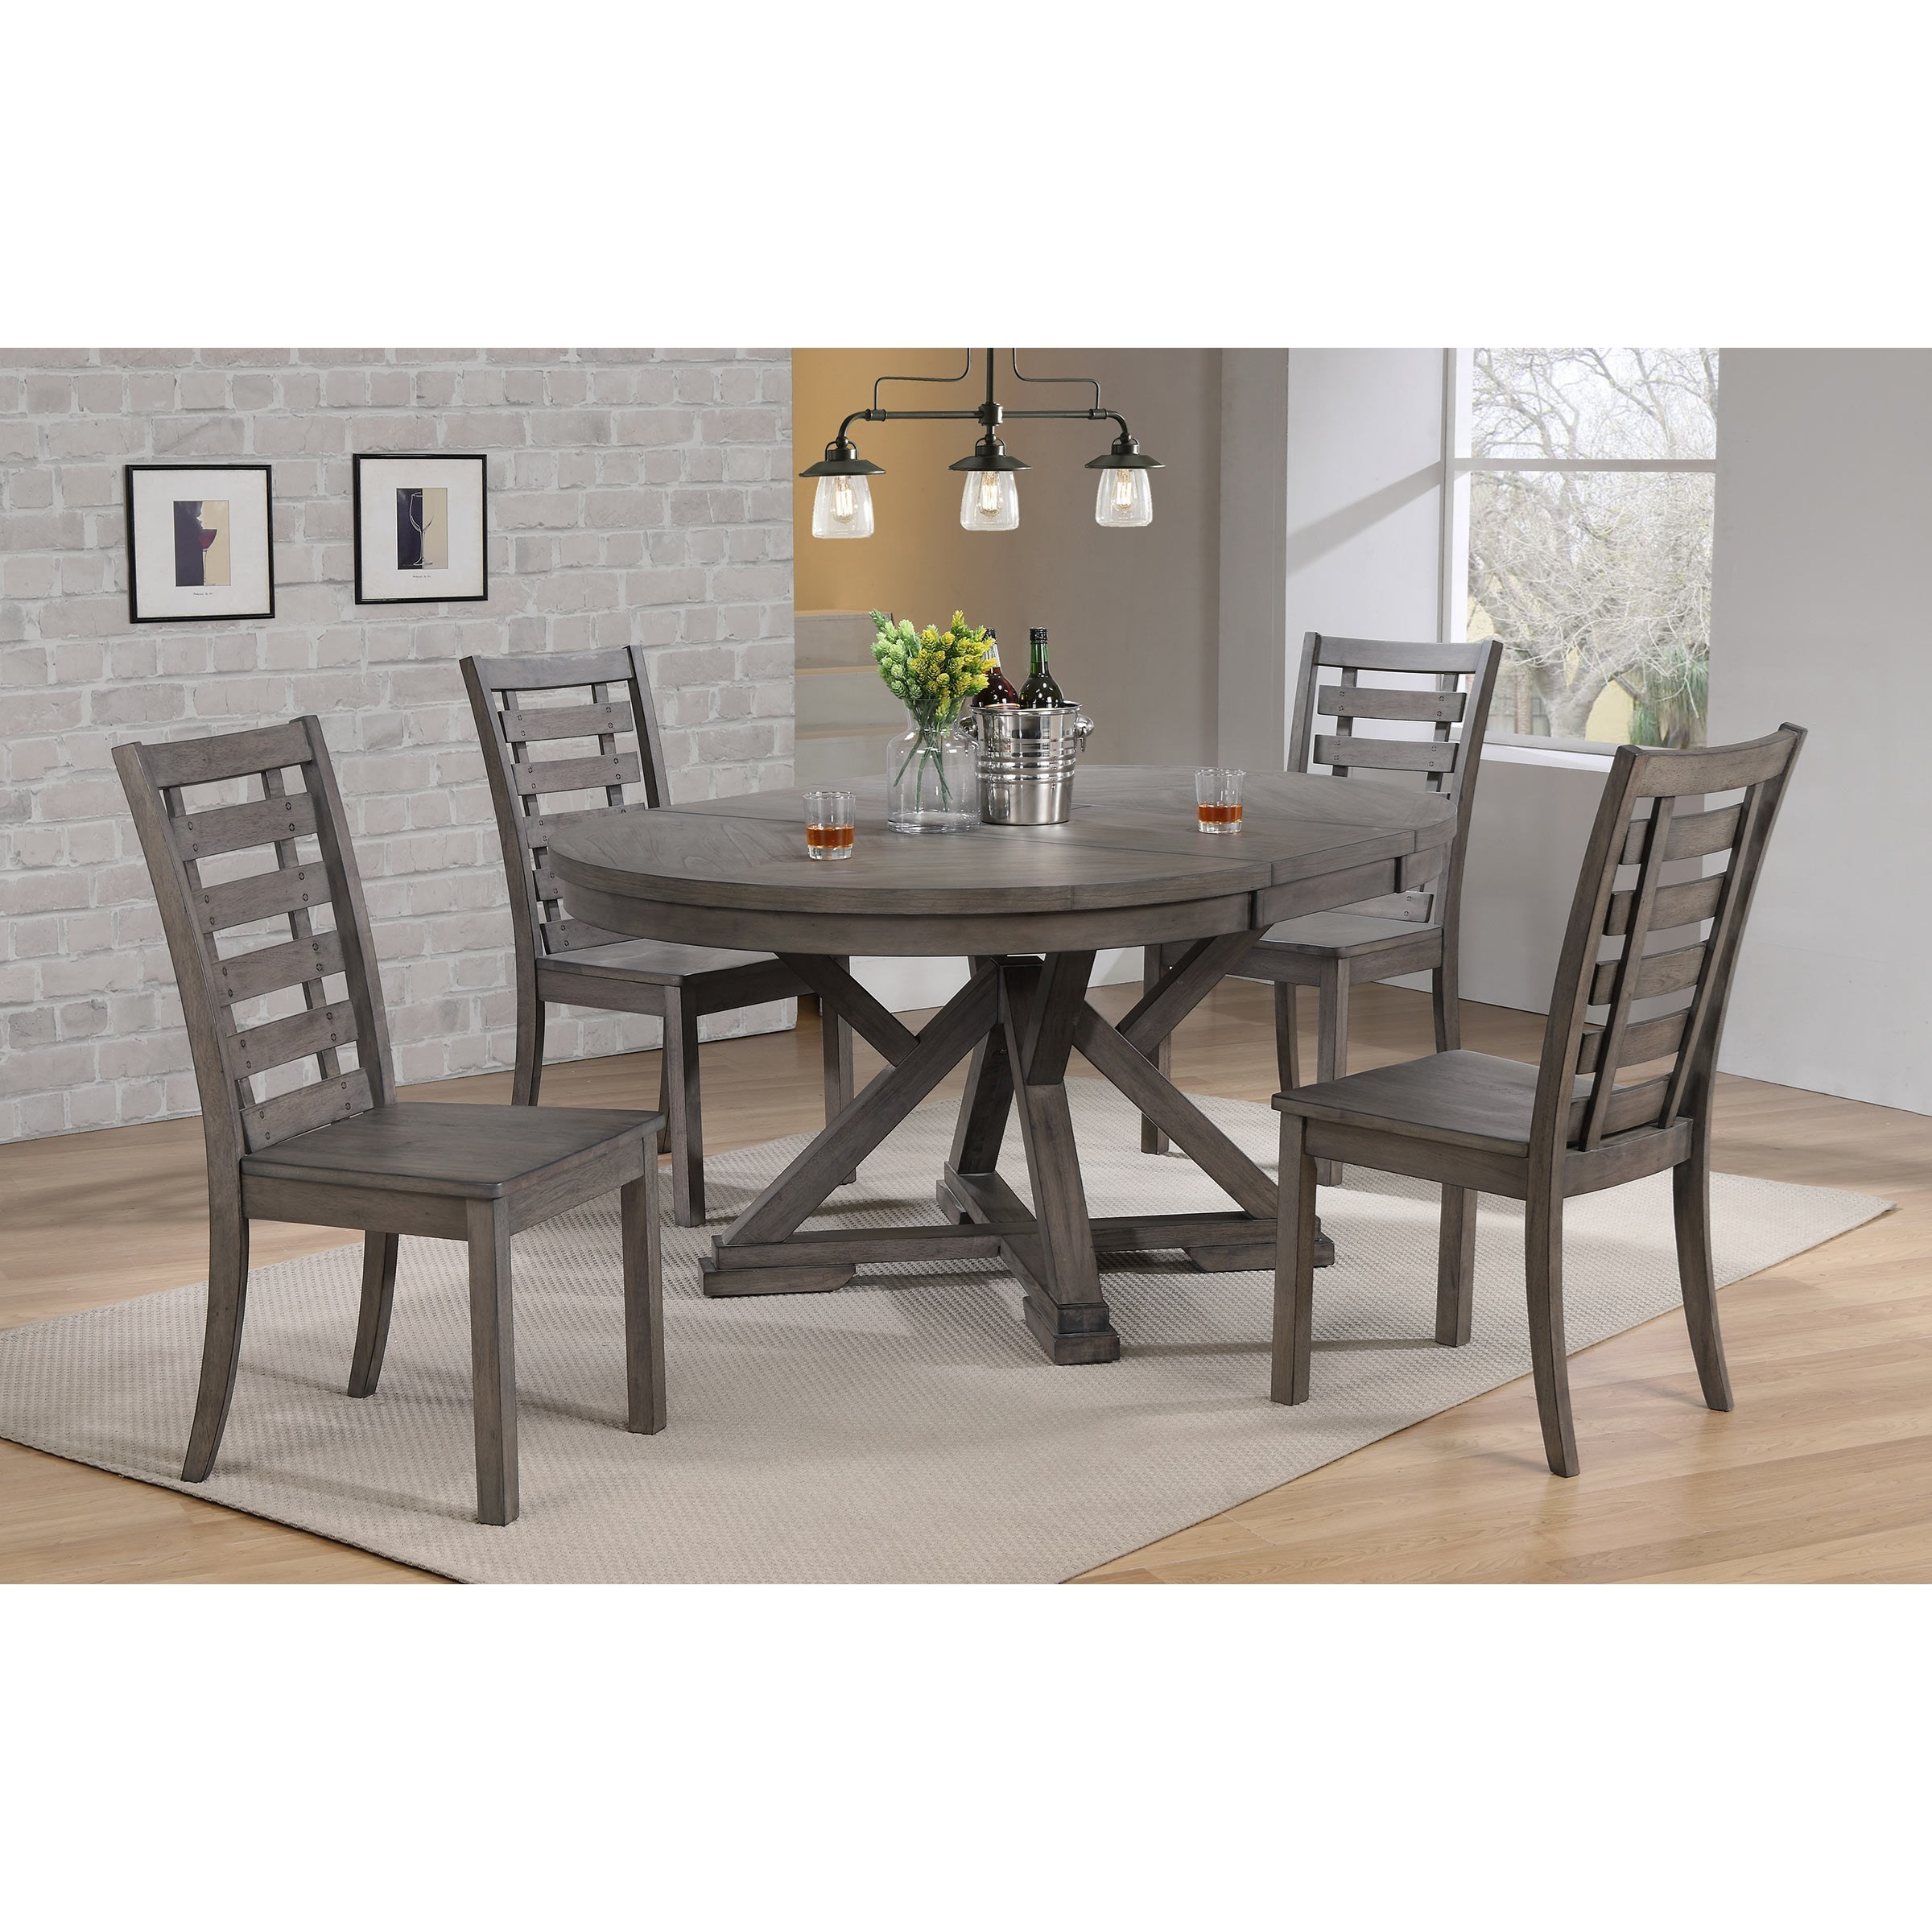 Winners Only Stratford Transitional 5 Piece Dining Set Sheely S Furniture Appliance Dining 5 Piece Sets